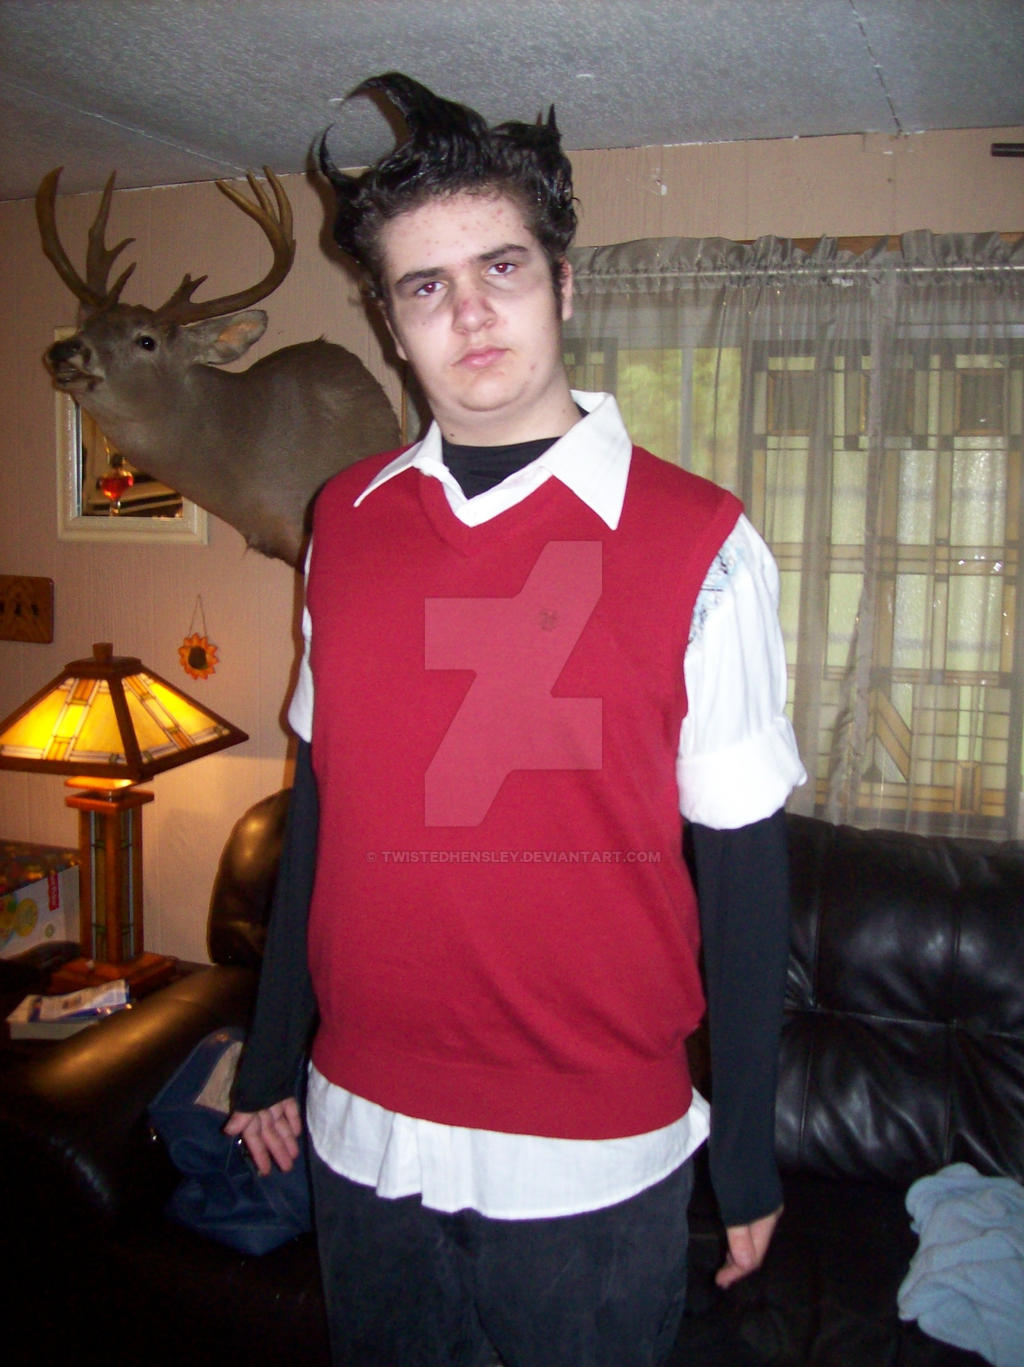 Don't Starve Wilson Cosplay 2013 Halloween Costume by TwistedHensley